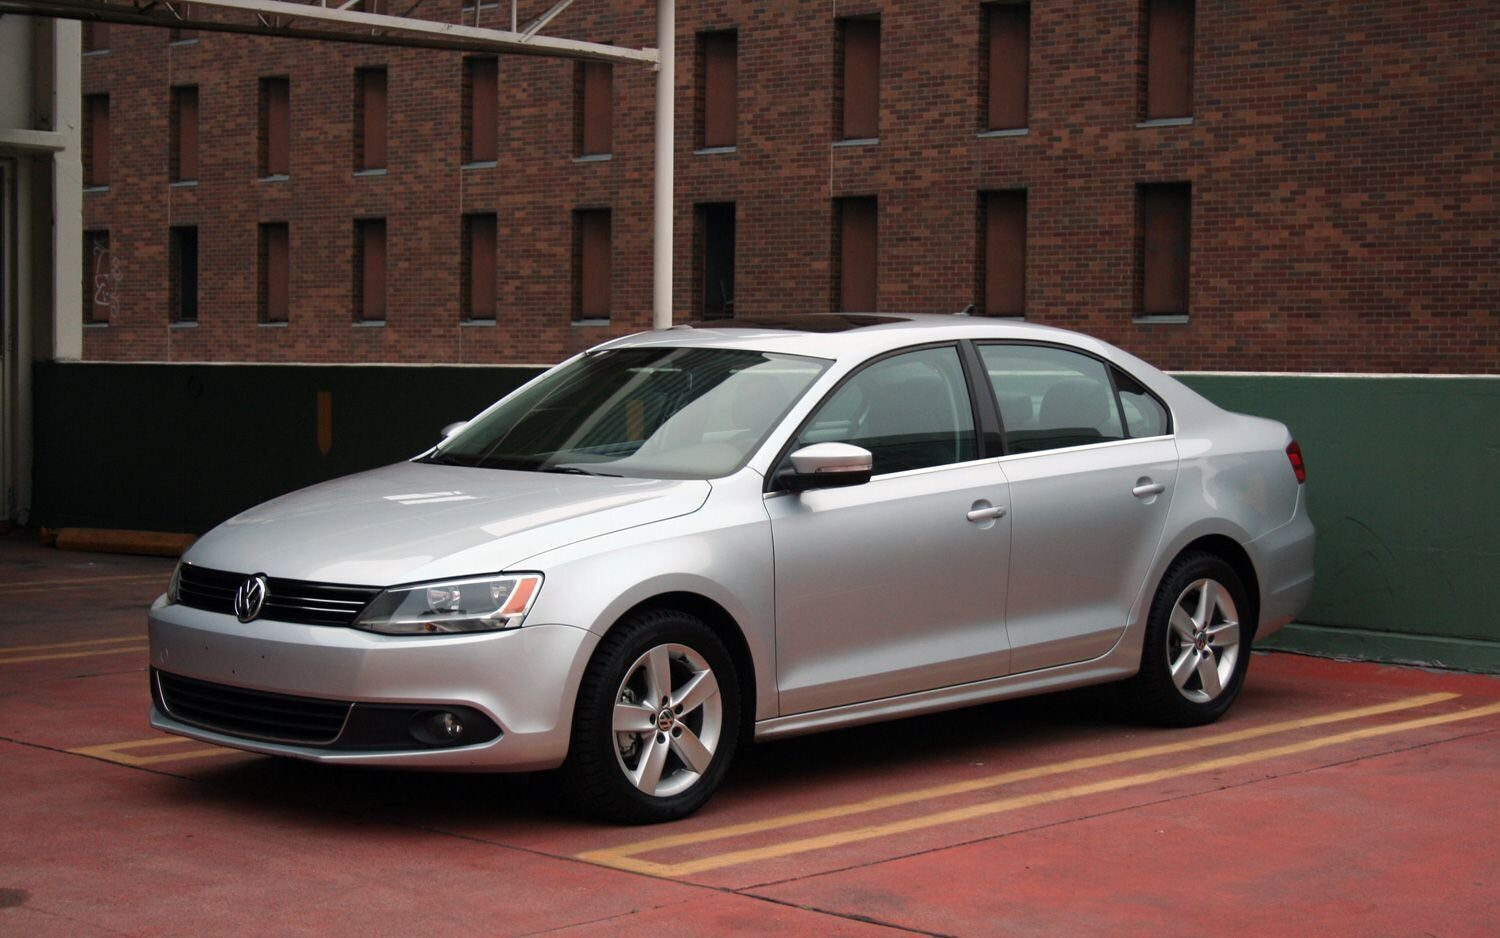 3-2011-volkswagen-jetta-tdi-in-historical-general-petroleum-garage